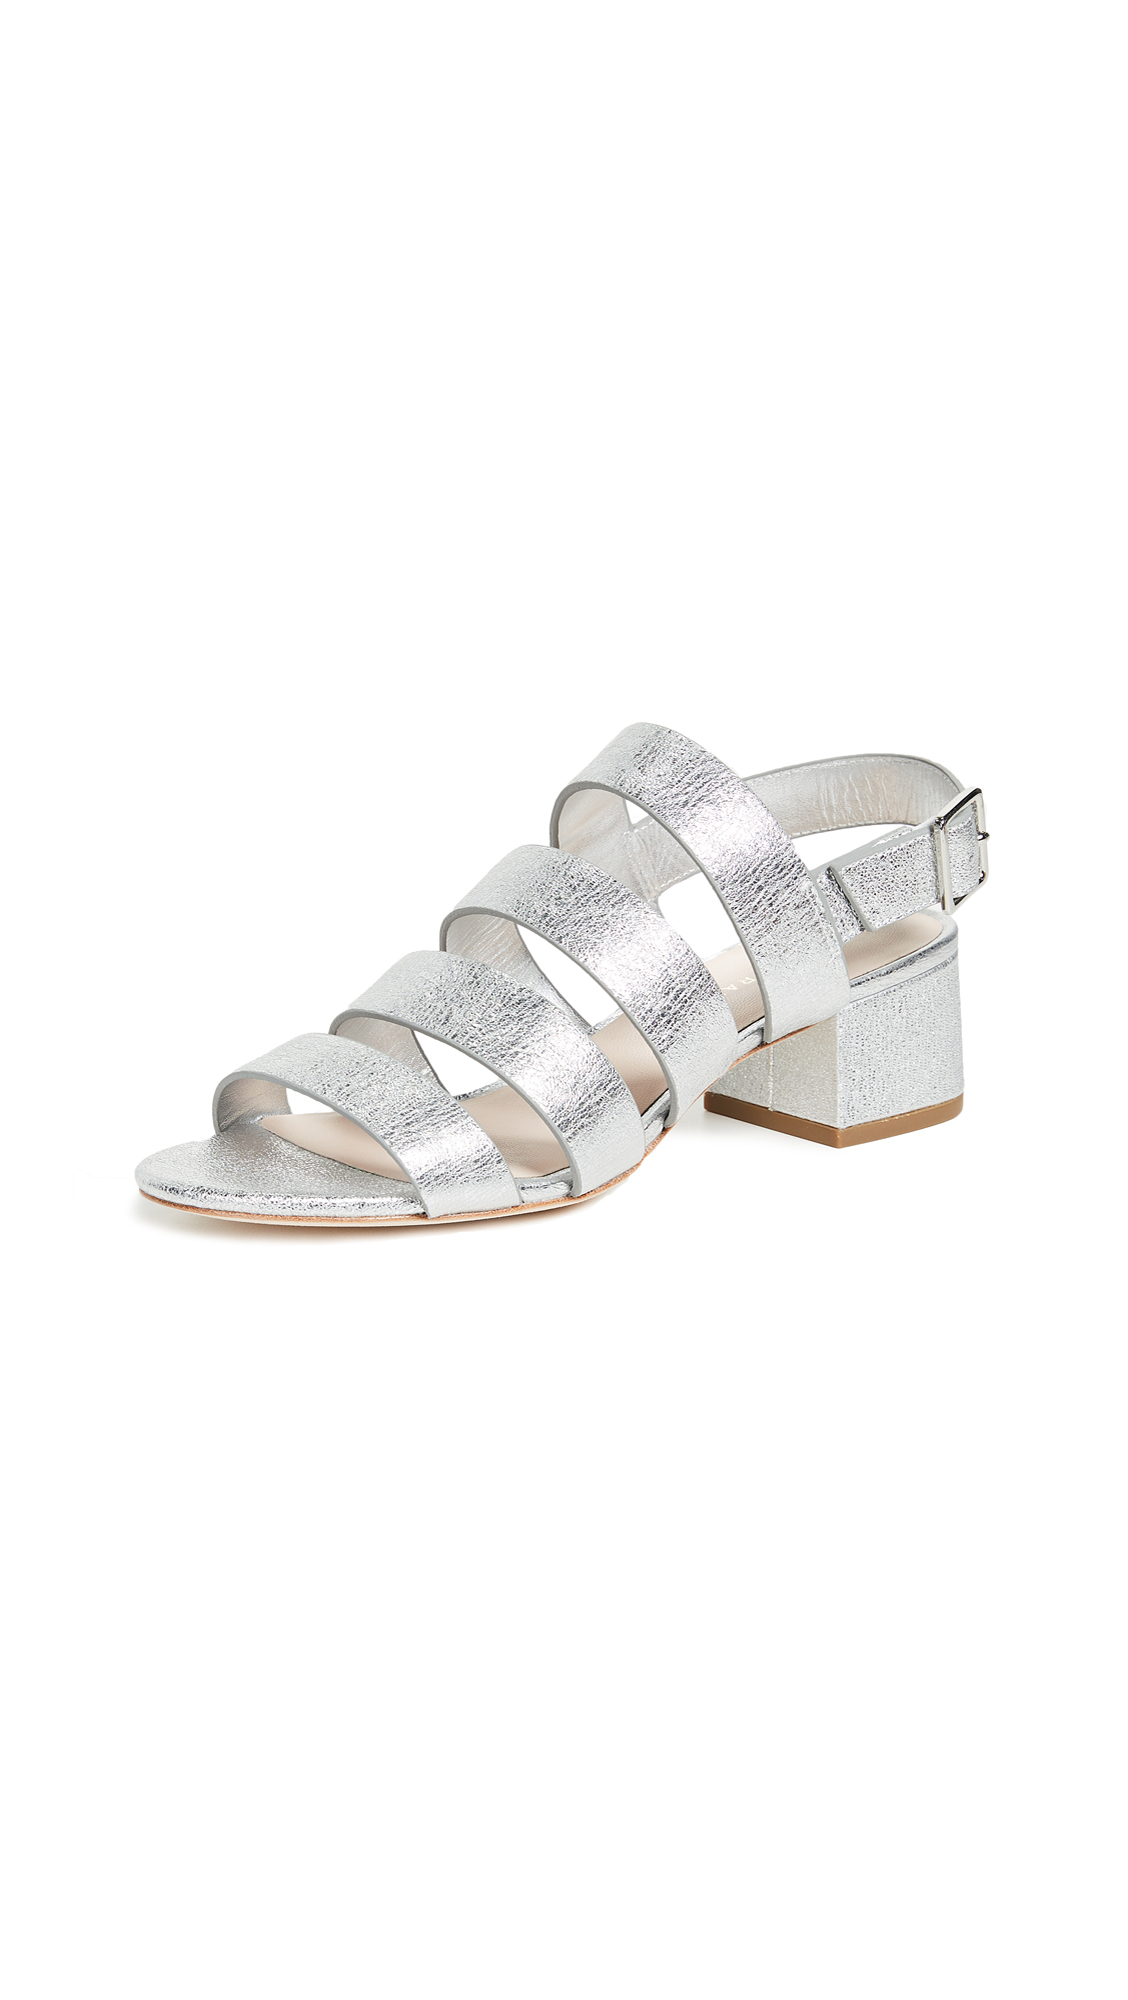 Photo of Loeffler Randall Mavis Sandals online shoes sales